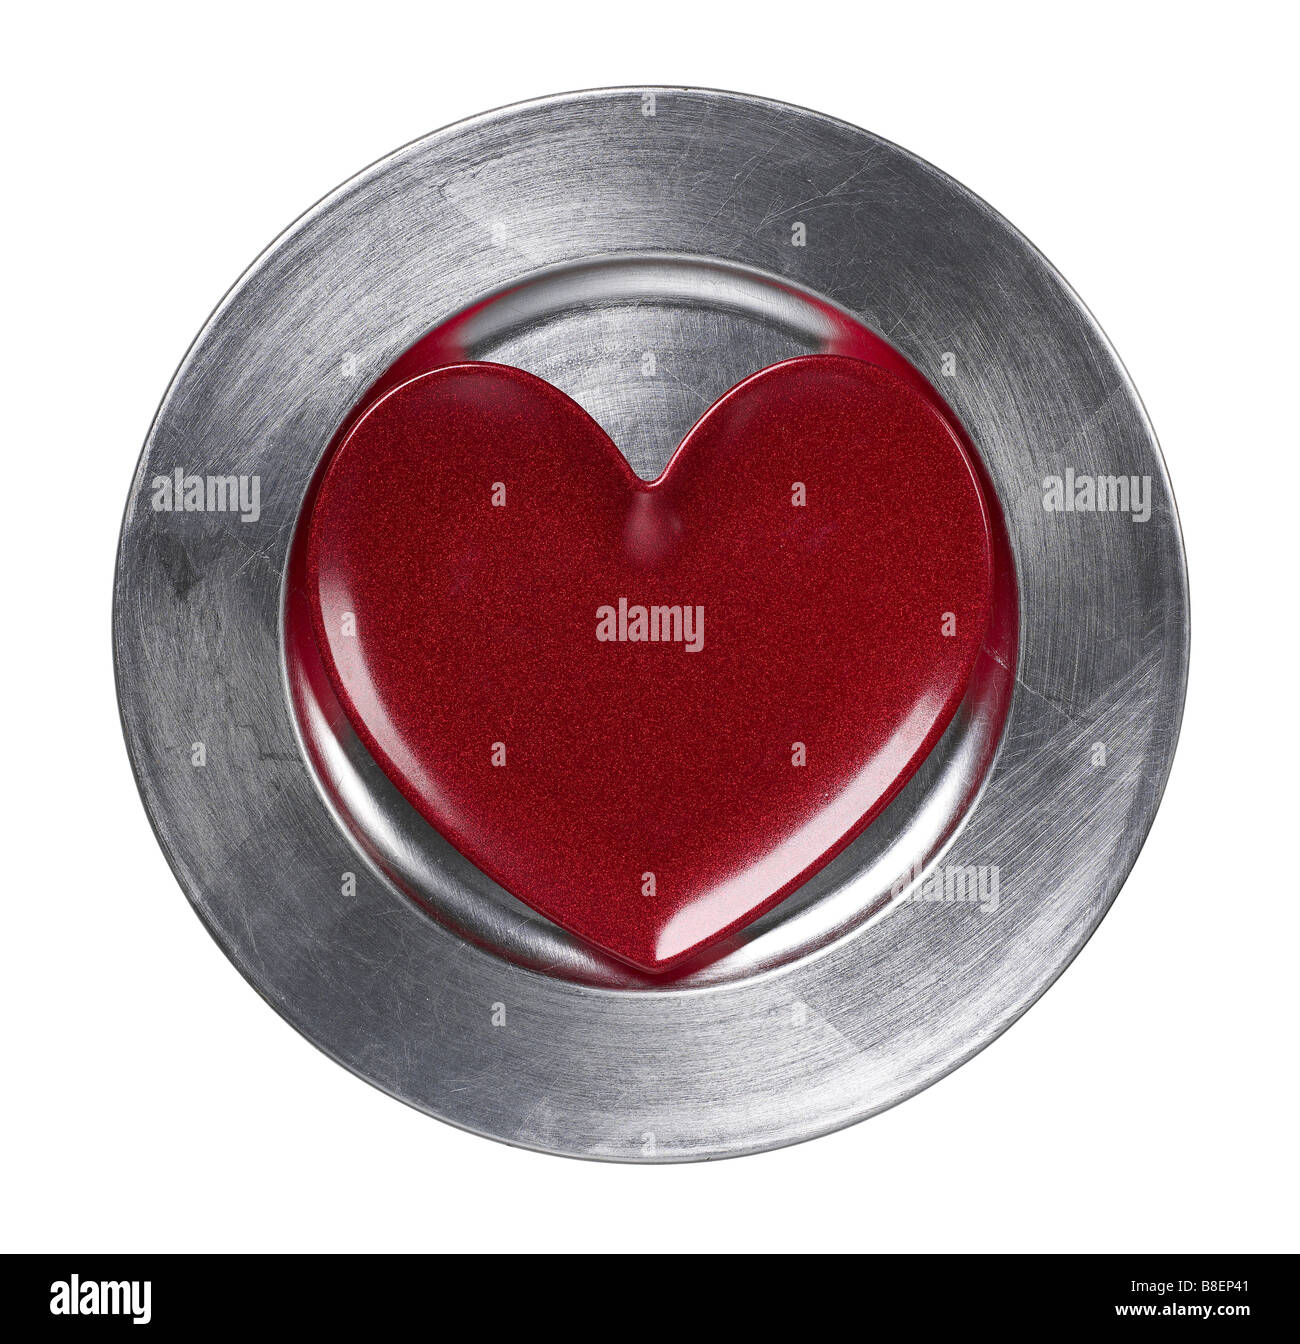 Heart on silver charger plate - Stock Image